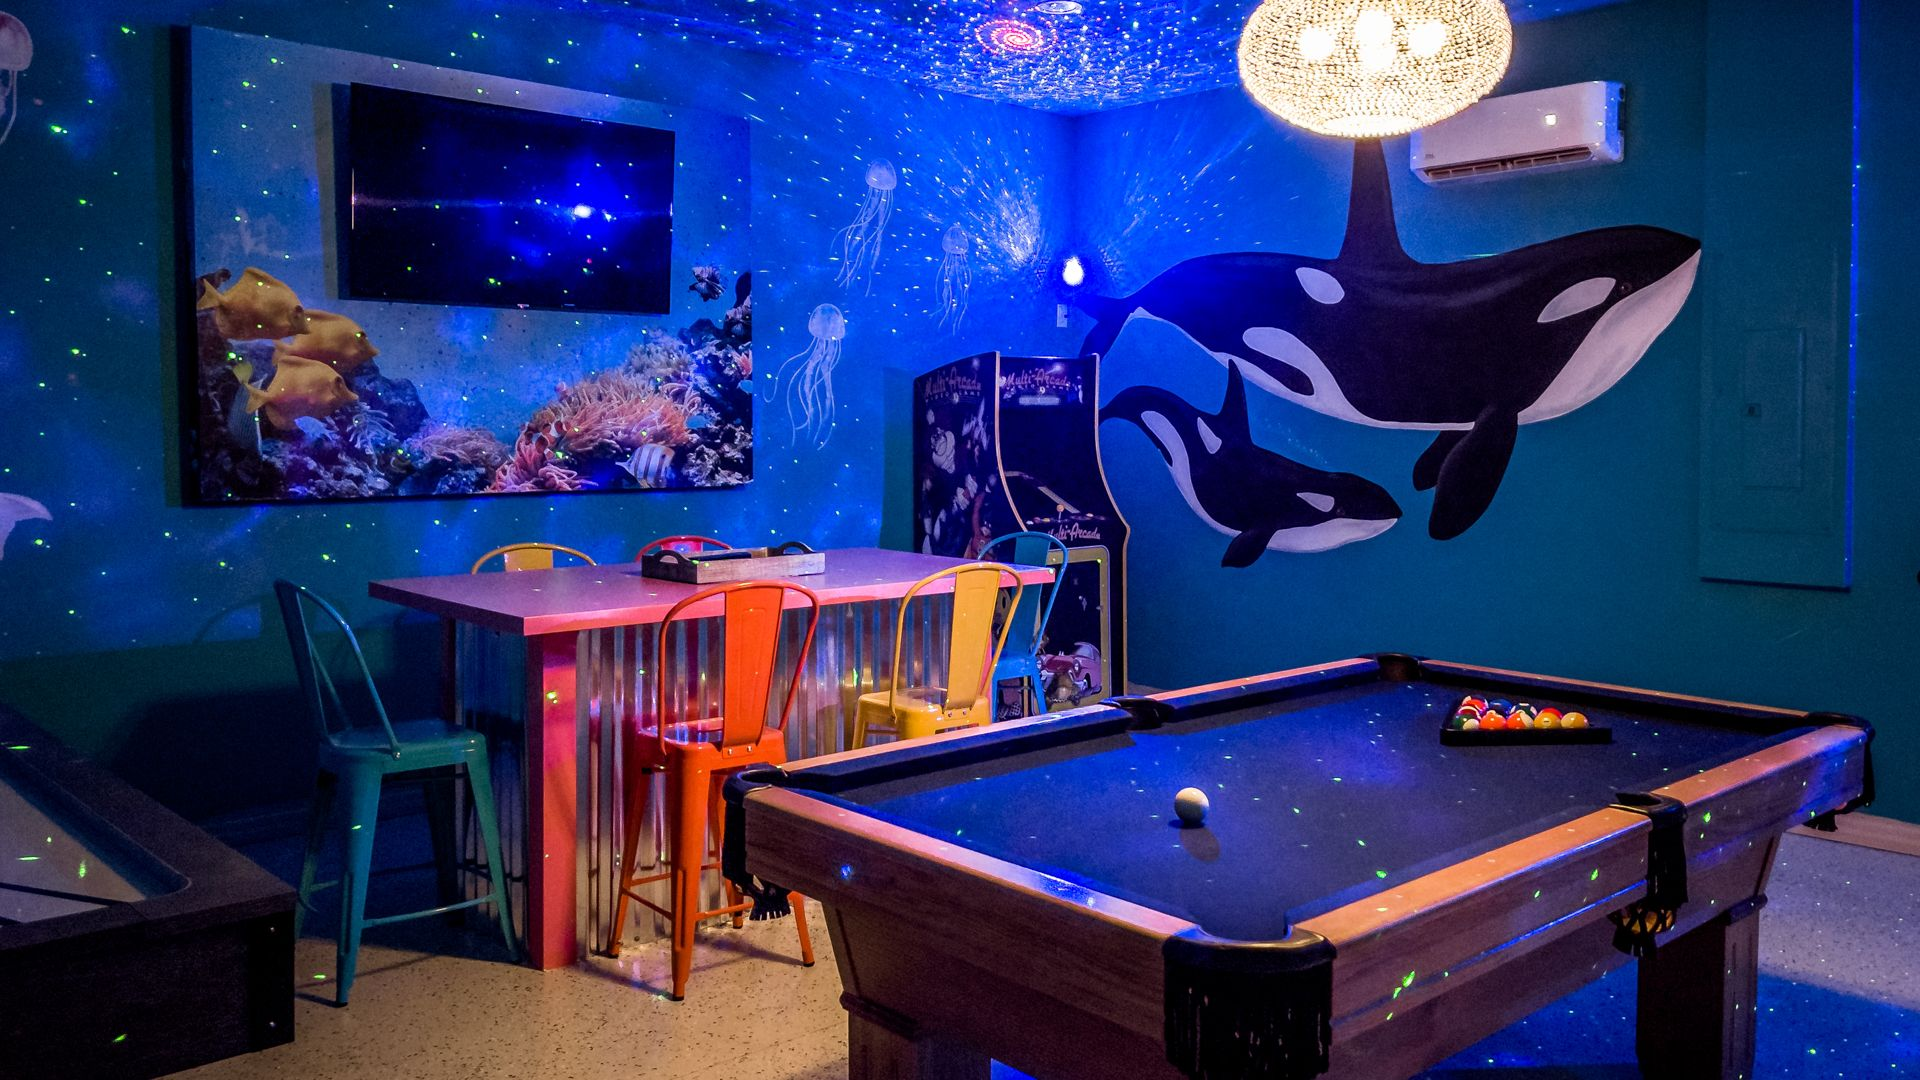 Game Room (Angle 2) Special Lighting in Game Room Special Ocean sound effects Air conditioning